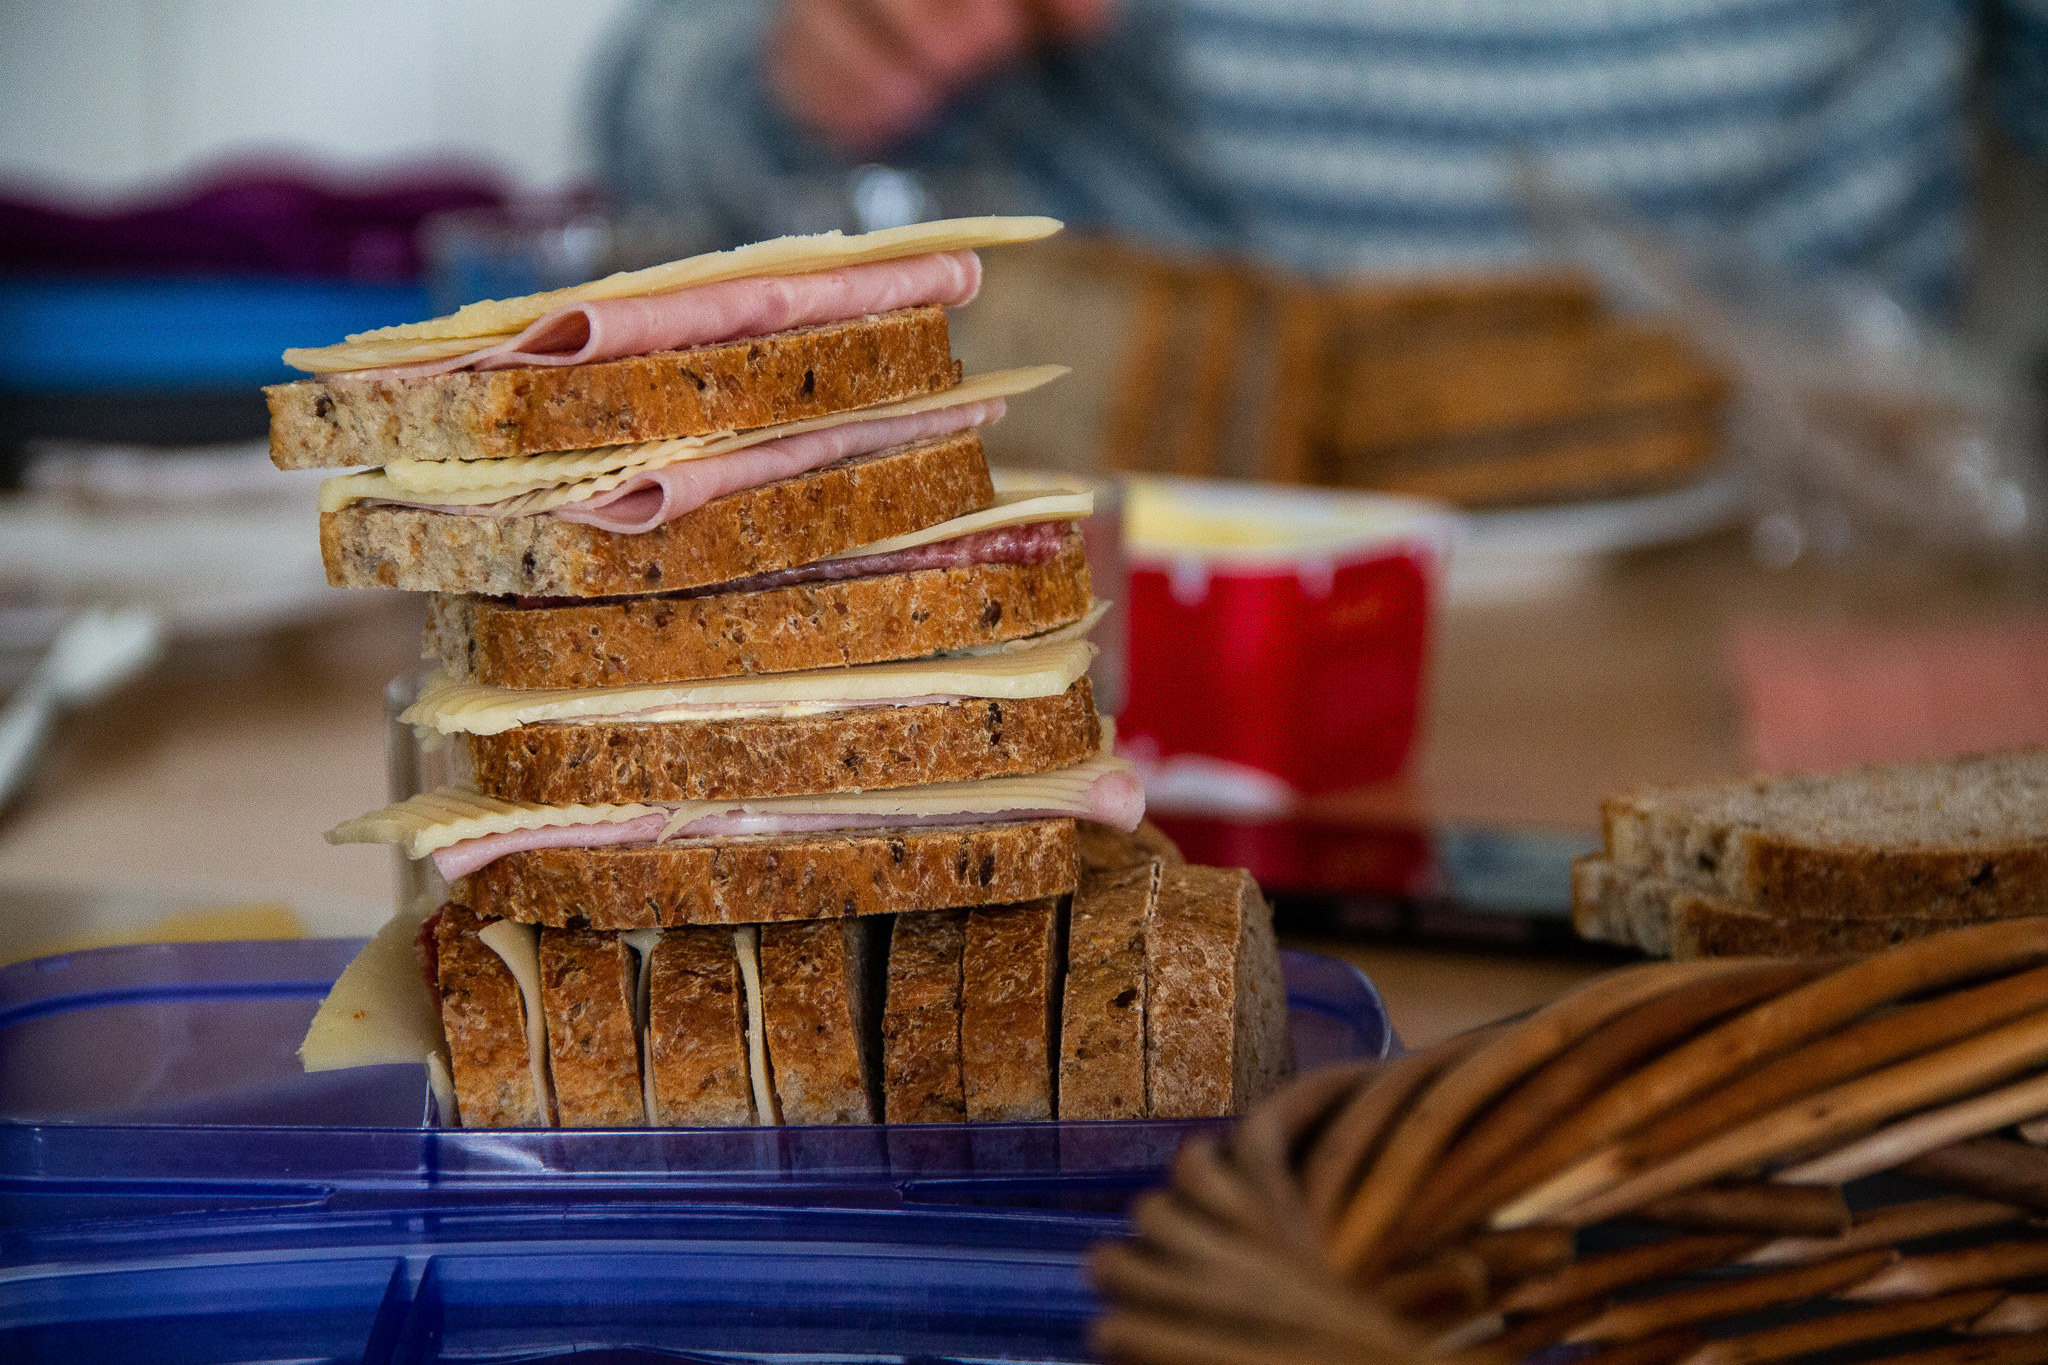 A stack of breads and sandwich meats